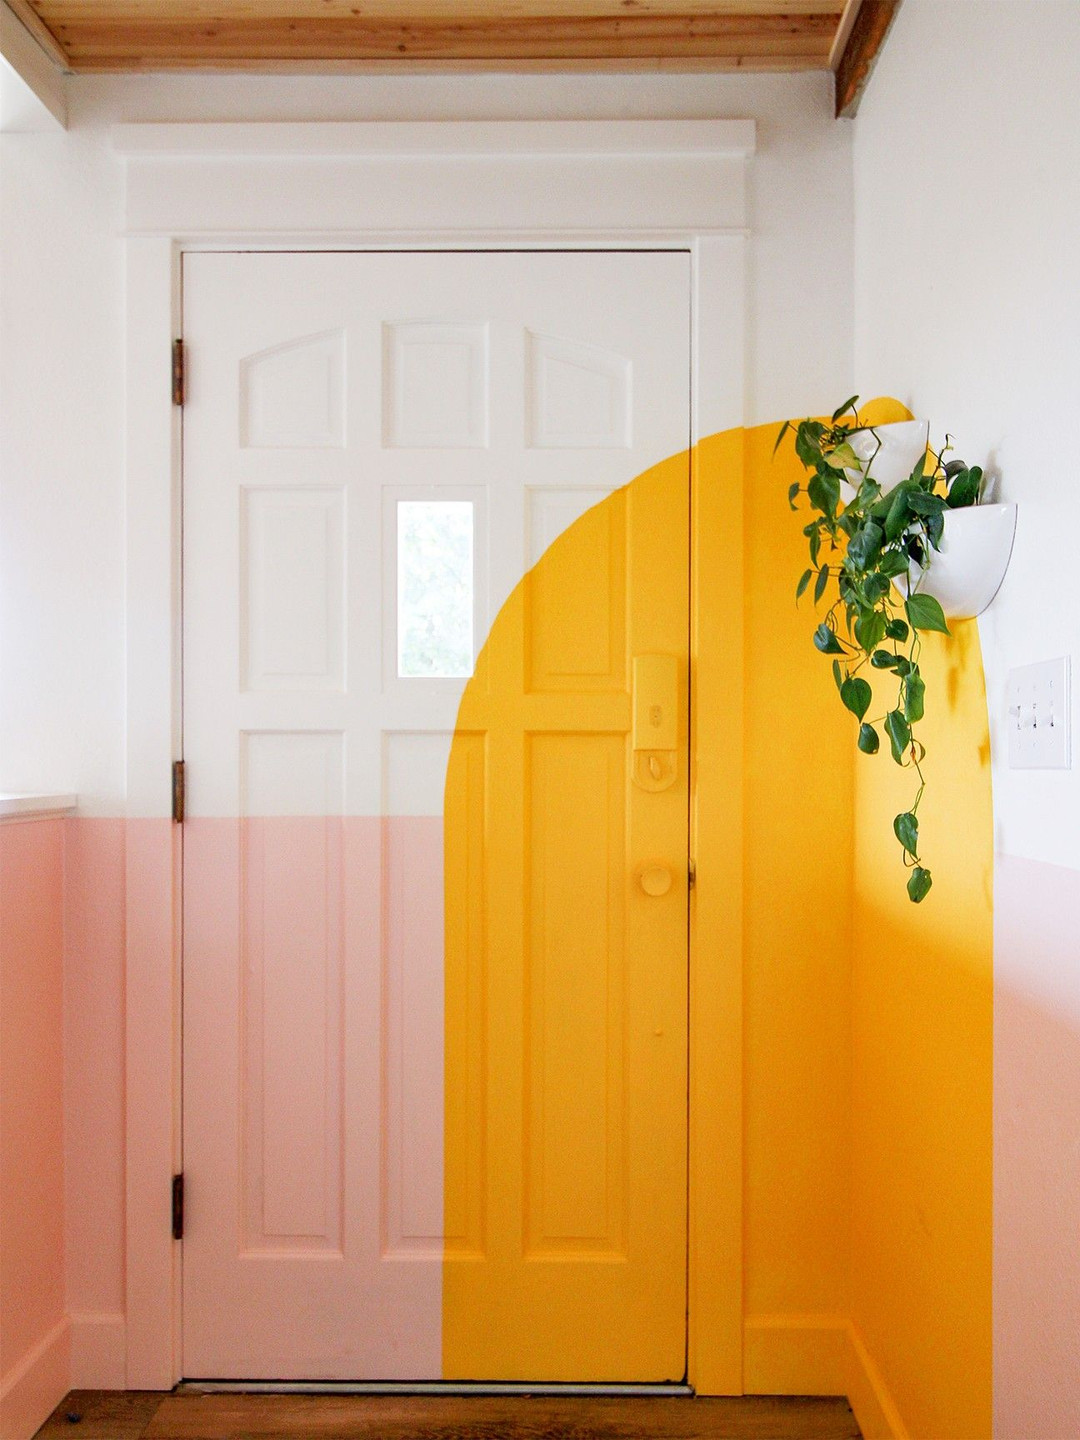 yellow arch painted on door frame